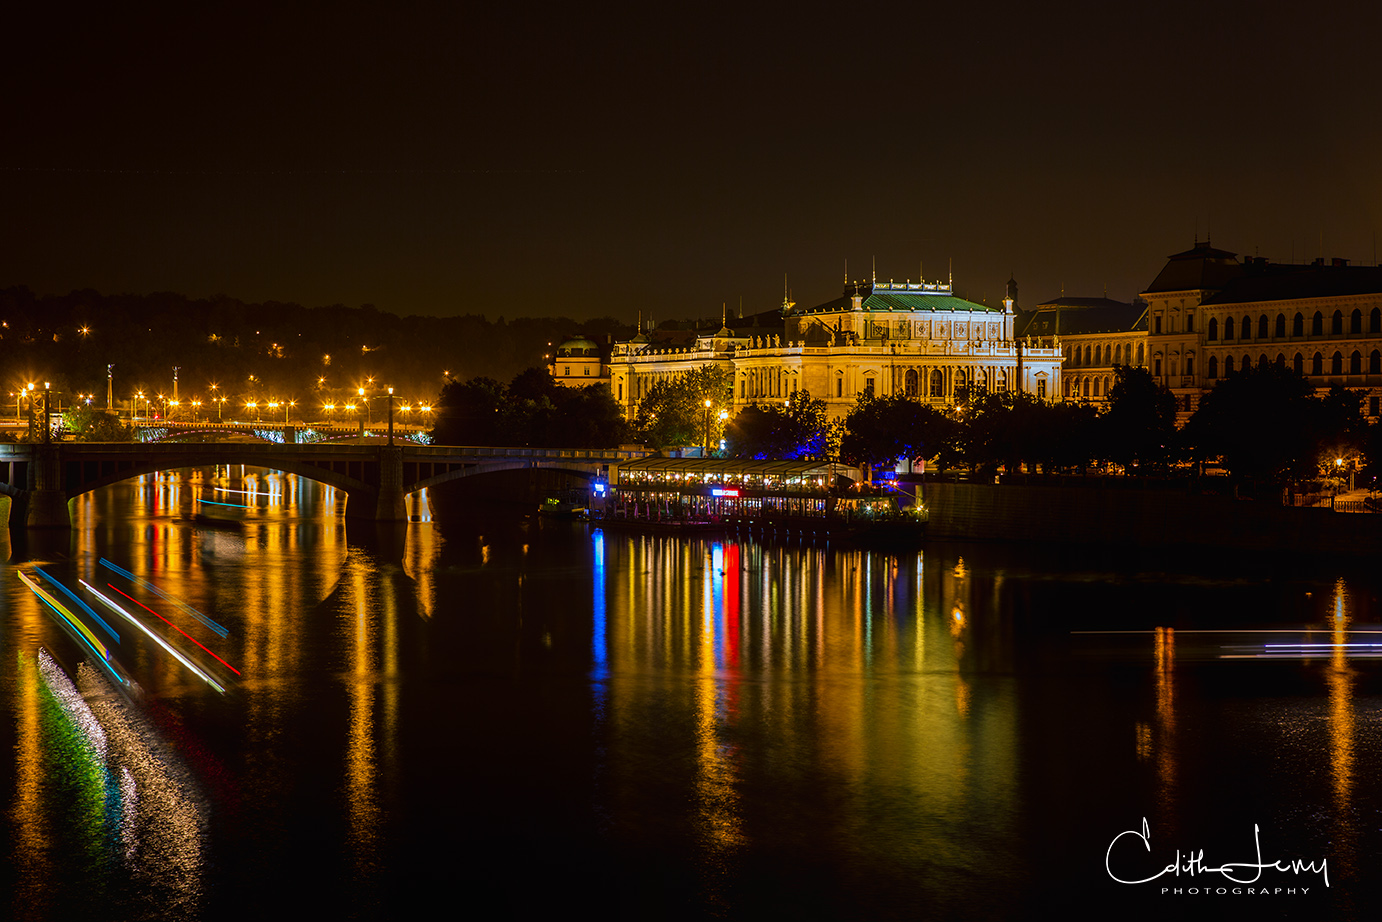 The Vltava river in Prague at night. This is the view from the Charles Bridge.